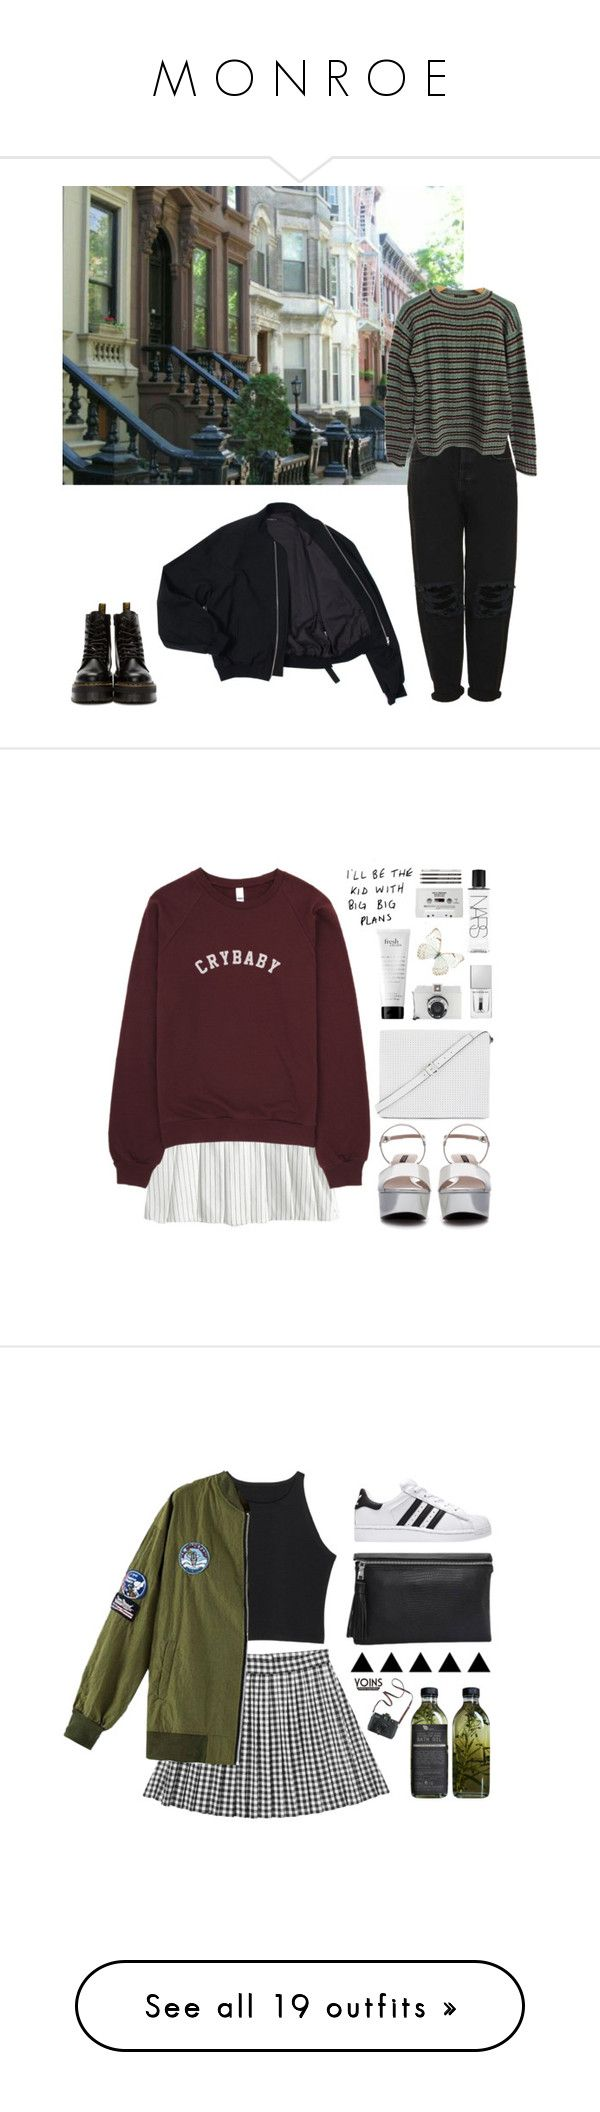 """""""M O N R O E"""" by malikxmania ❤ liked on Polyvore featuring Boutique, Prada, Dr. Martens, Zara, BCBGMAXAZRIA, Givenchy, philosophy, NARS Cosmetics, CASSETTE and Monki"""